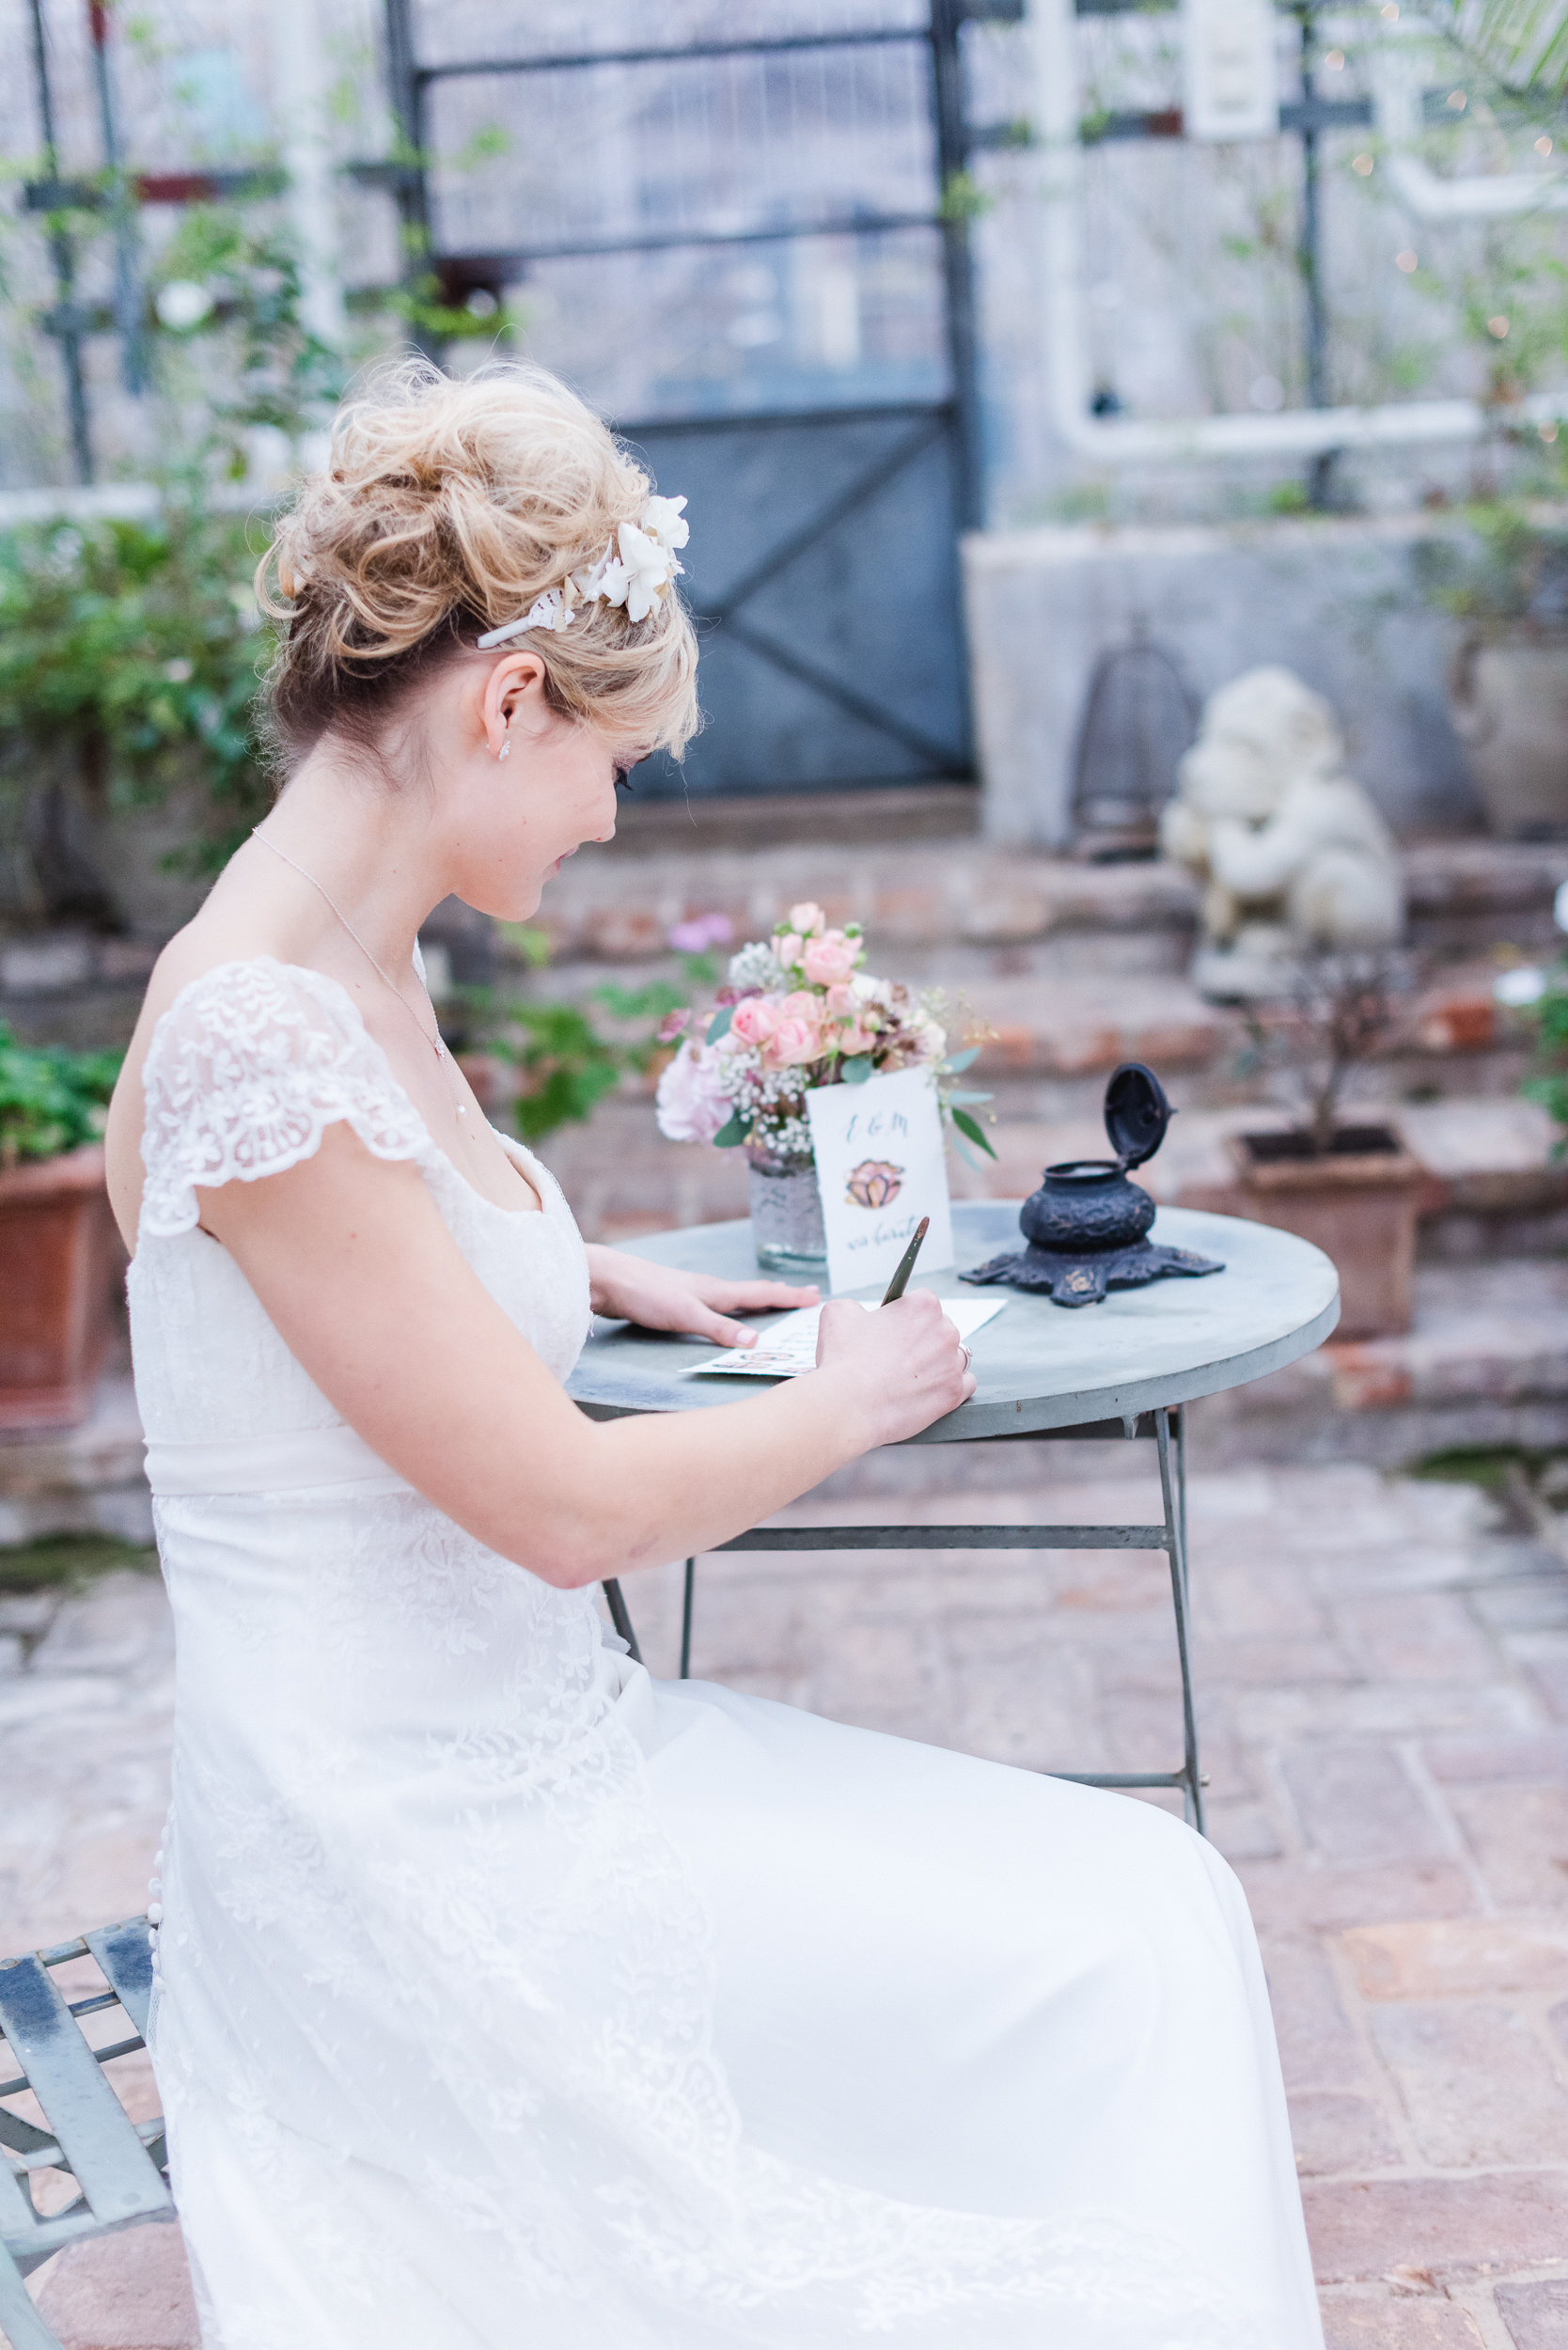 Romantic Look - Inspiration Bridal Styling 2015 / Kalligrafie